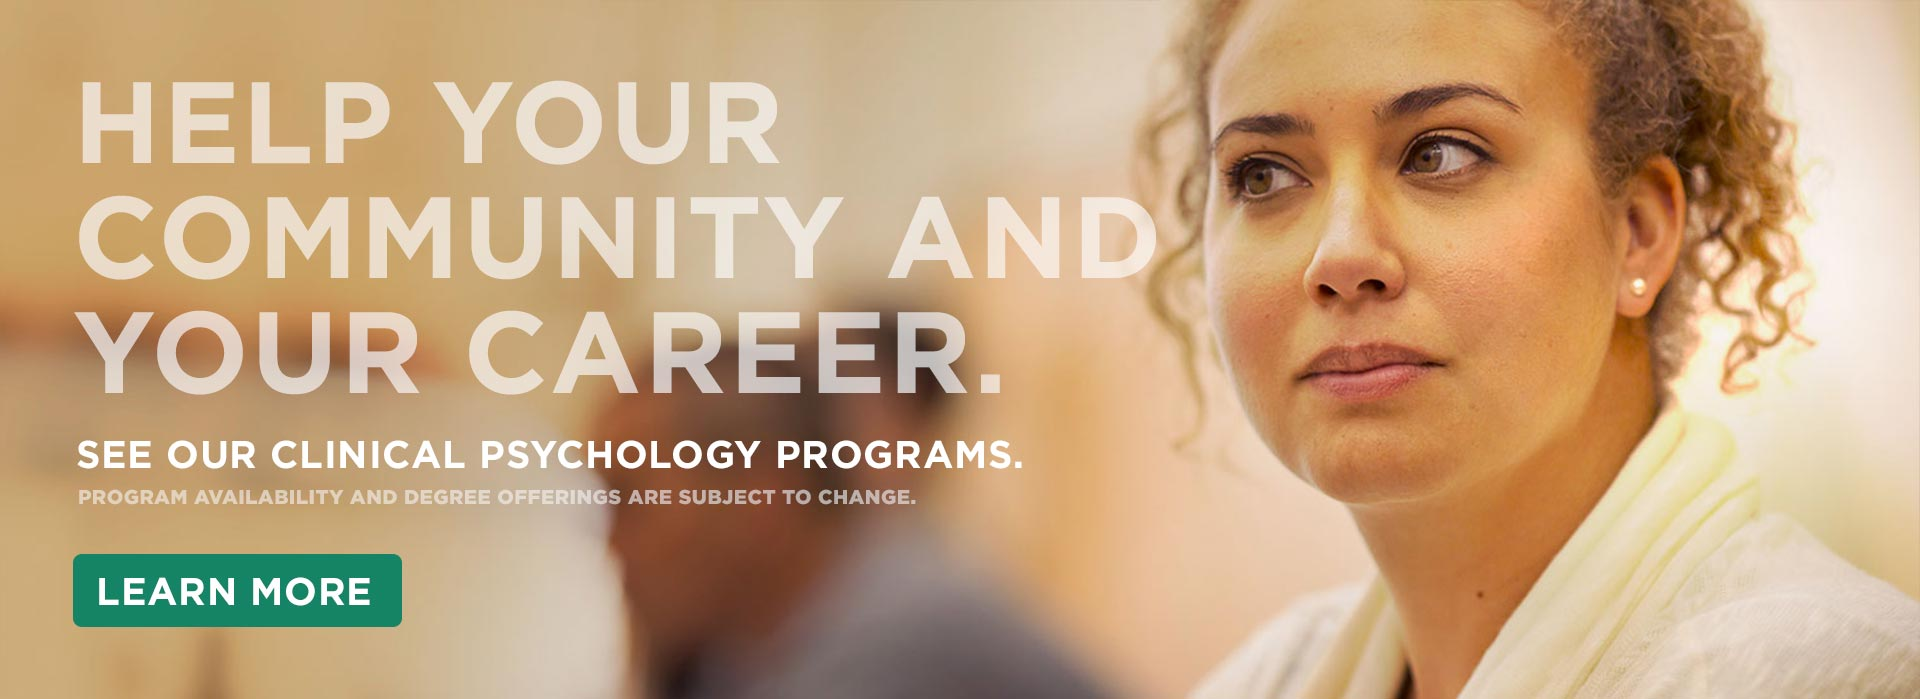 Argosy University Clinical Psychology